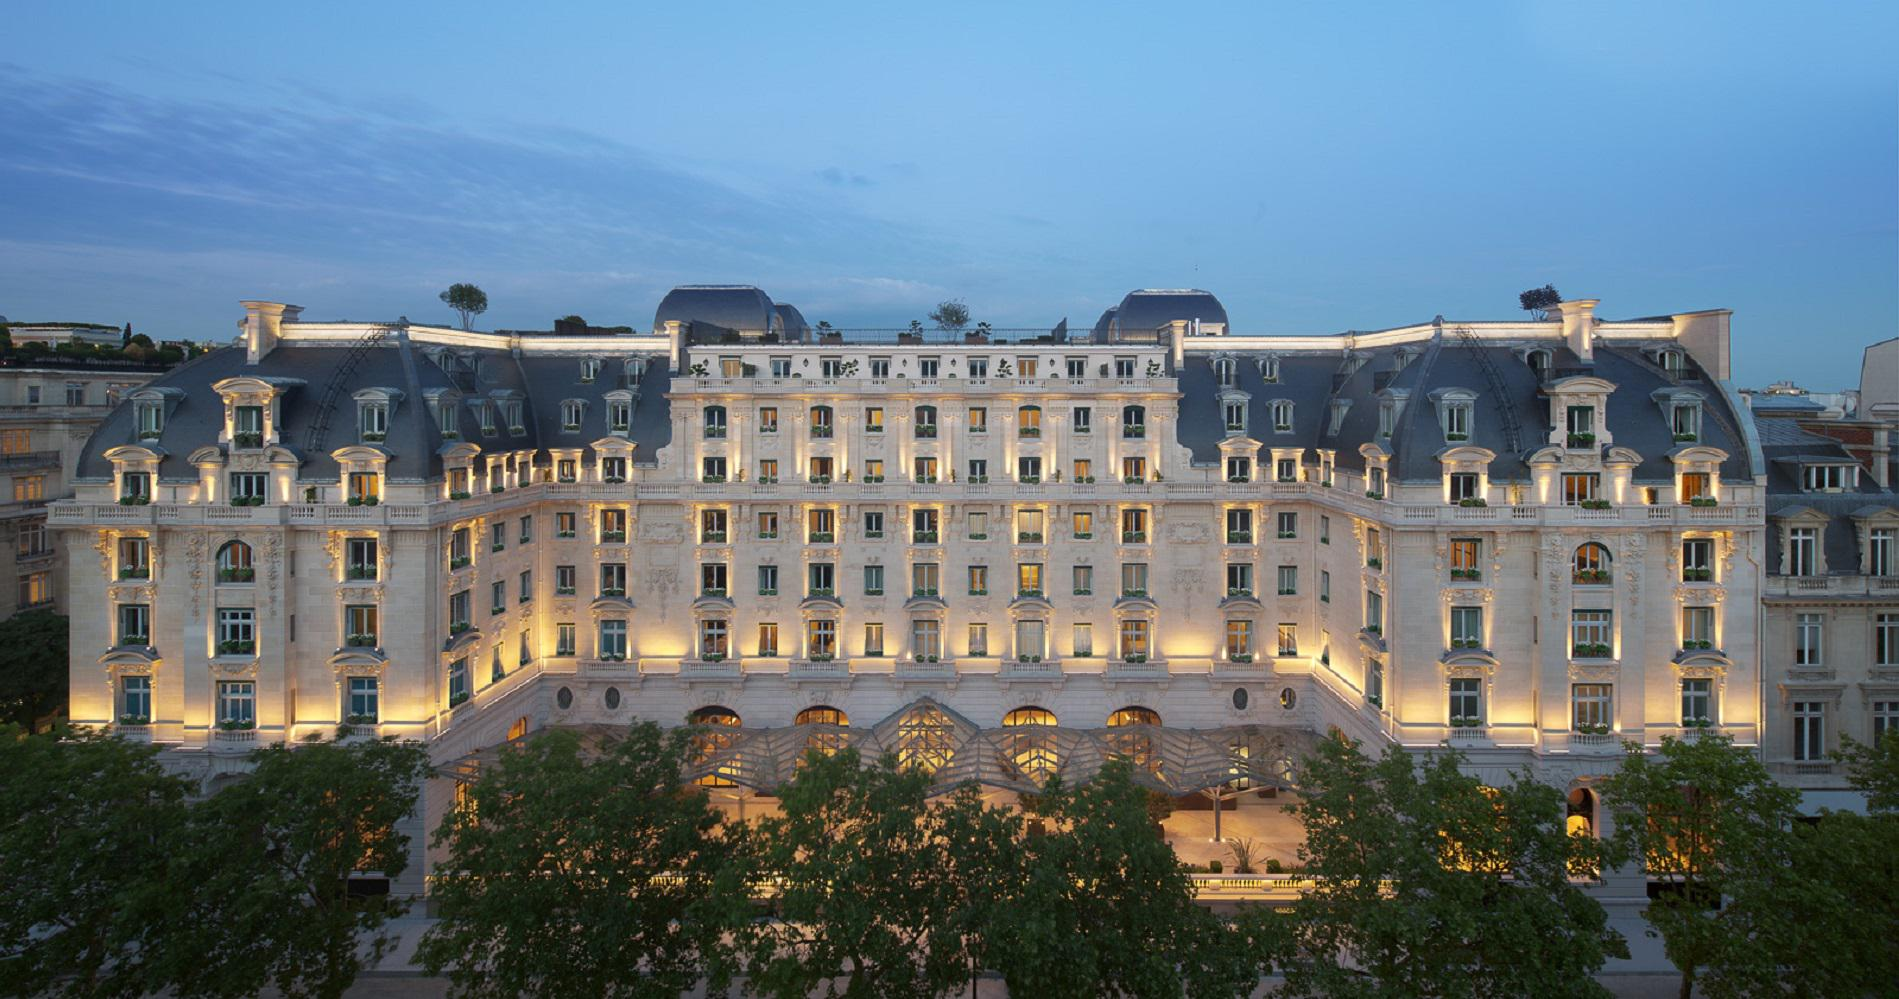 Top 3 Worthy Hotels To Stay In During Paris Design Week paris design week Top 3 Worthy Hotels To Stay In During Paris Design Week Top 3 Worthy Hotels To Stay In During Paris Design Week